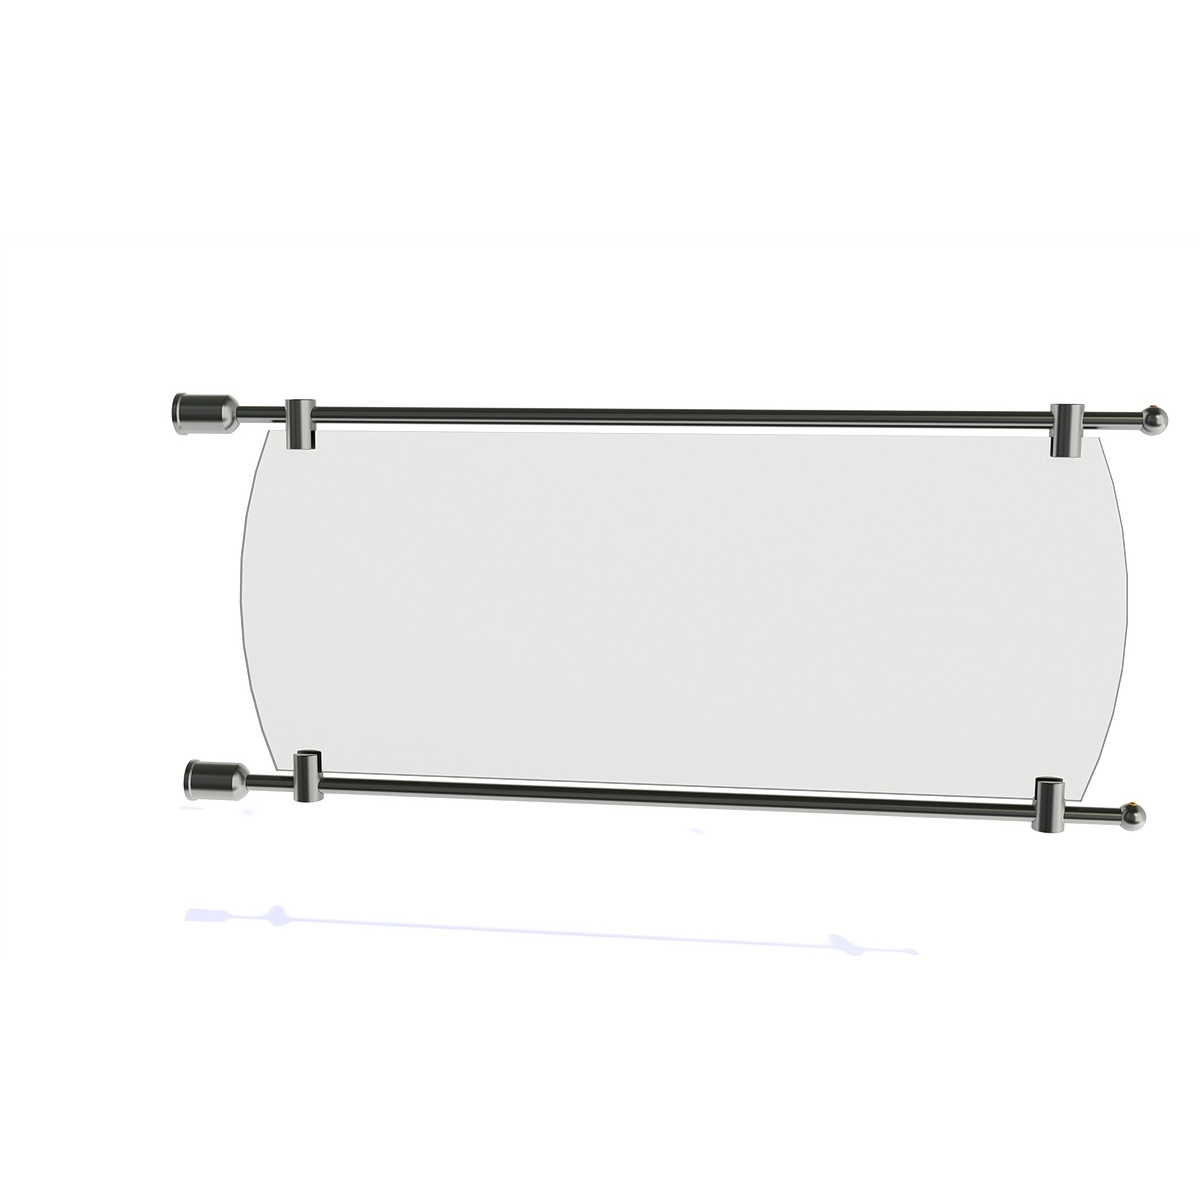 """3/8'' Diameter Rod Projecting Sign, Stainless Steel Satin Brushed Finish, 17 13/16"""" including the wall mounts. Material thickness up to 5/16"""""""